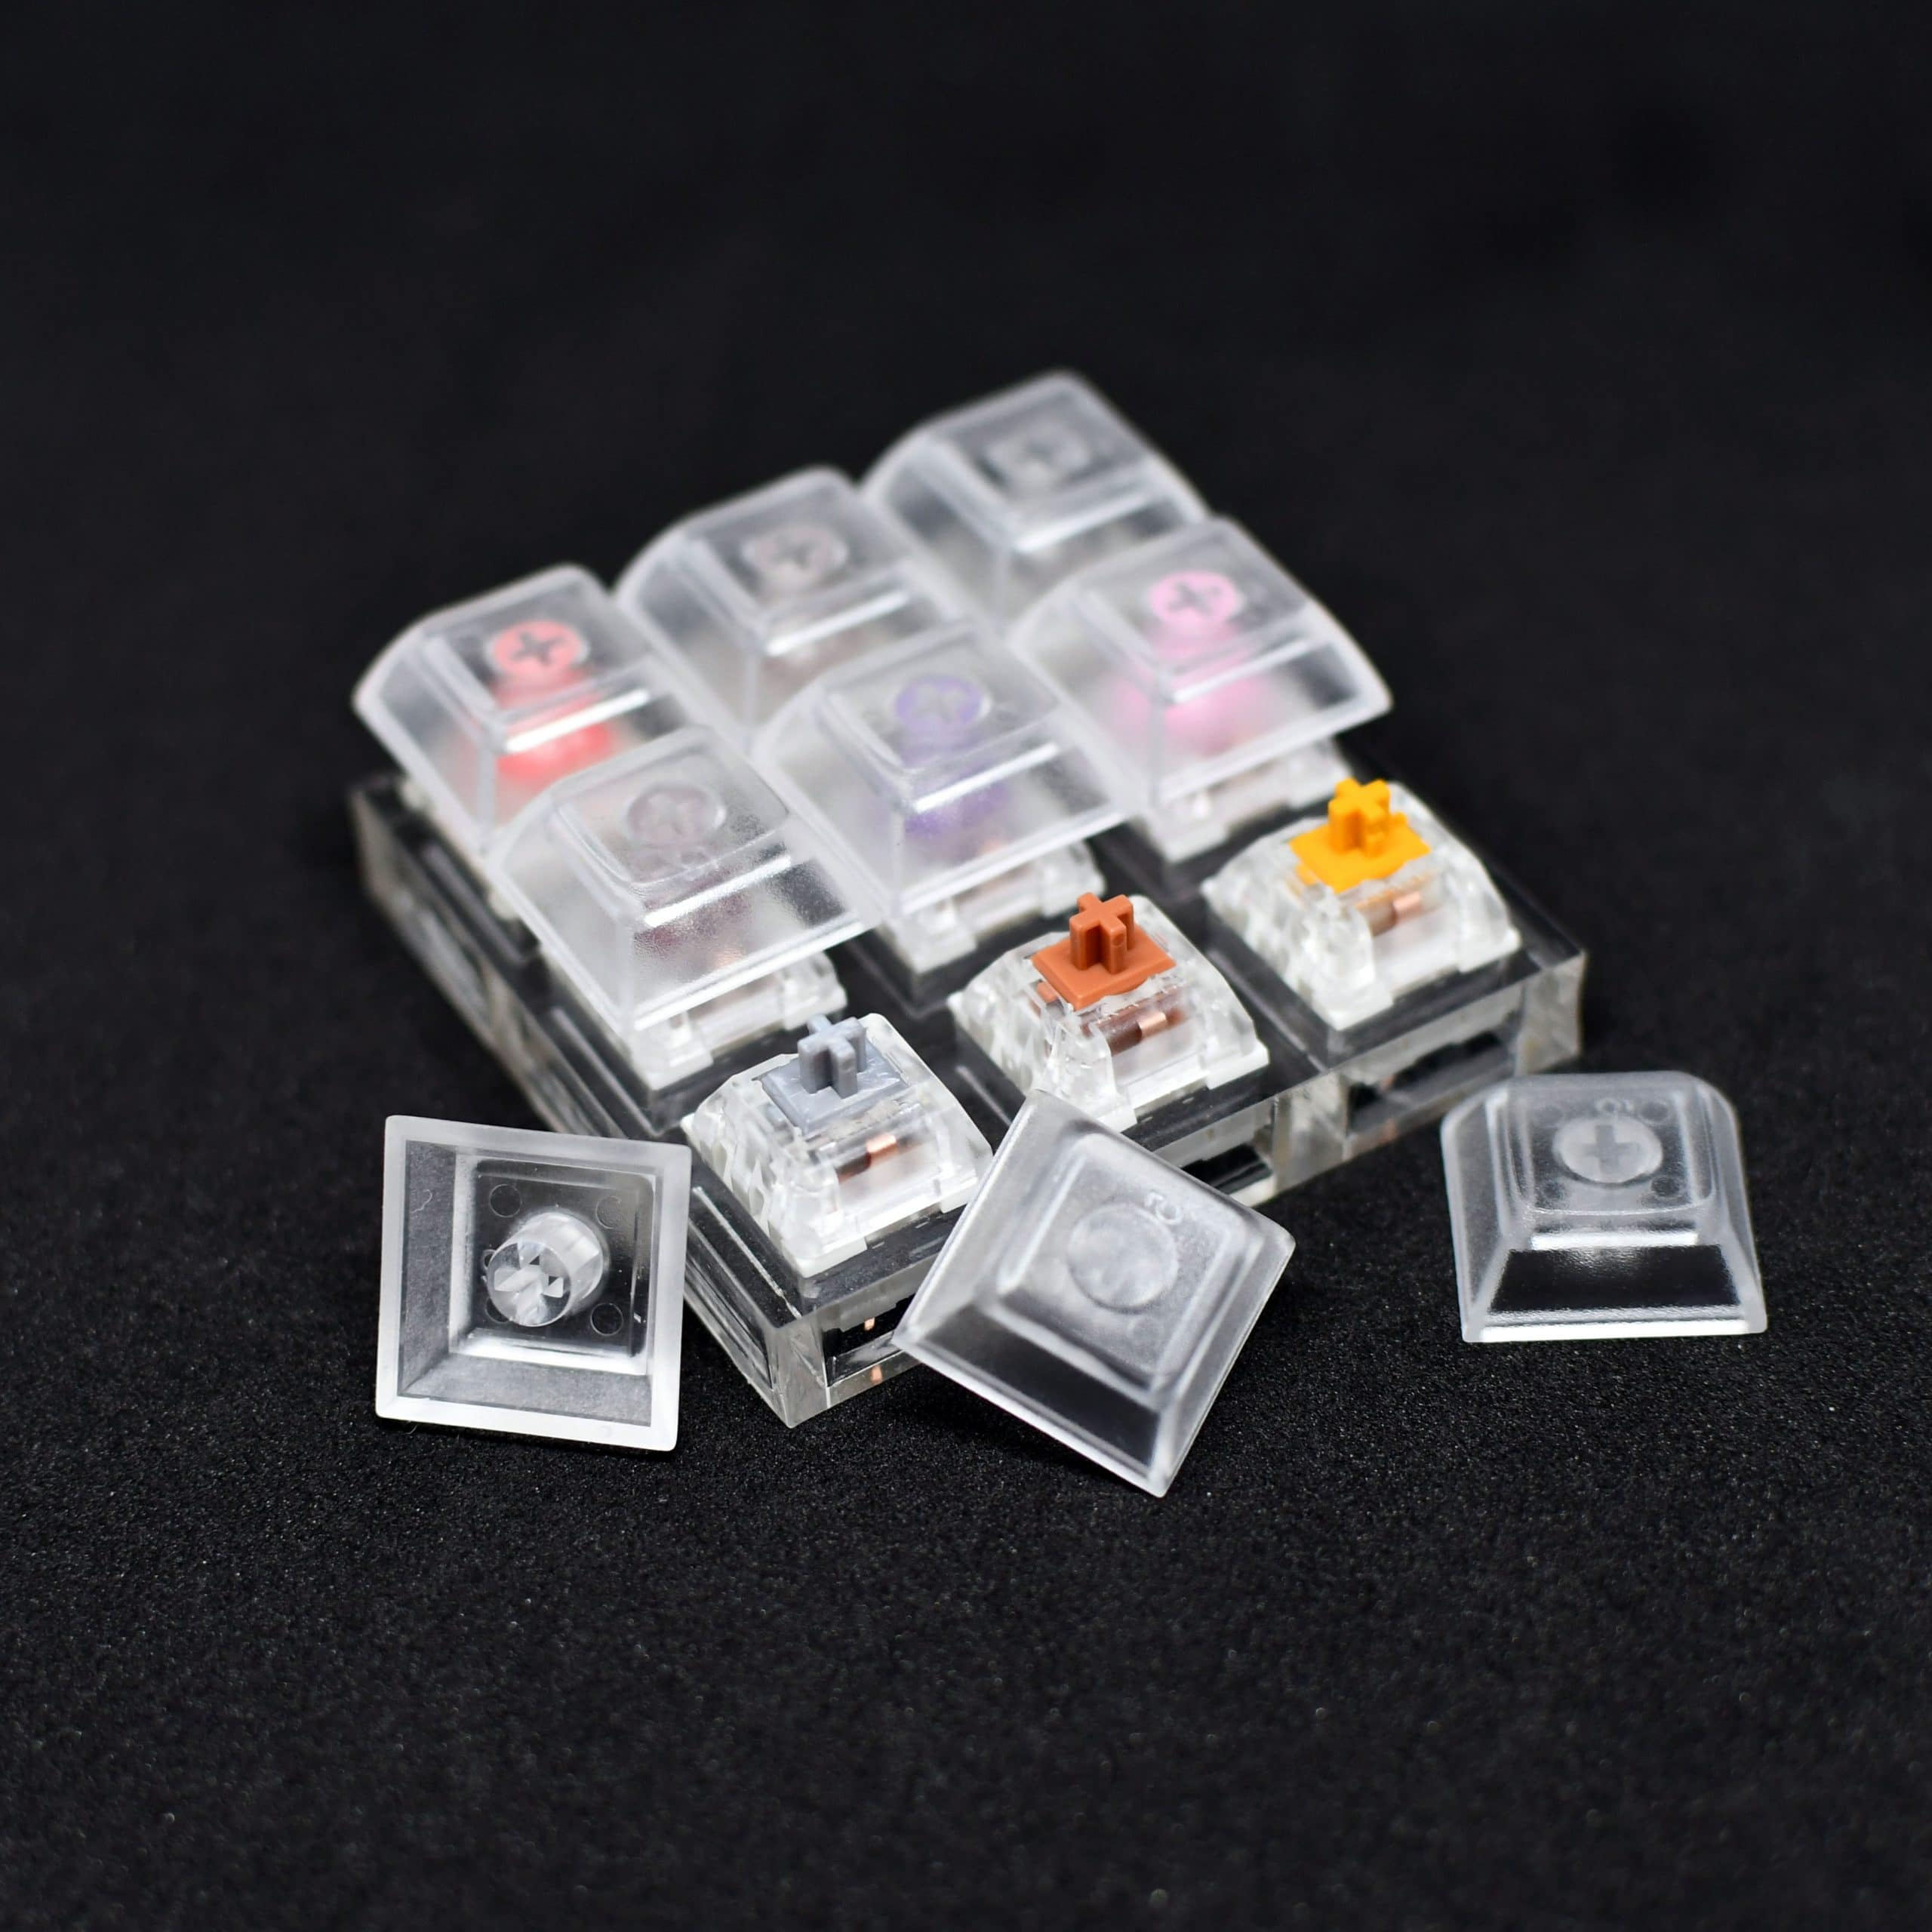 9 Slot Switch Tester with keycaps